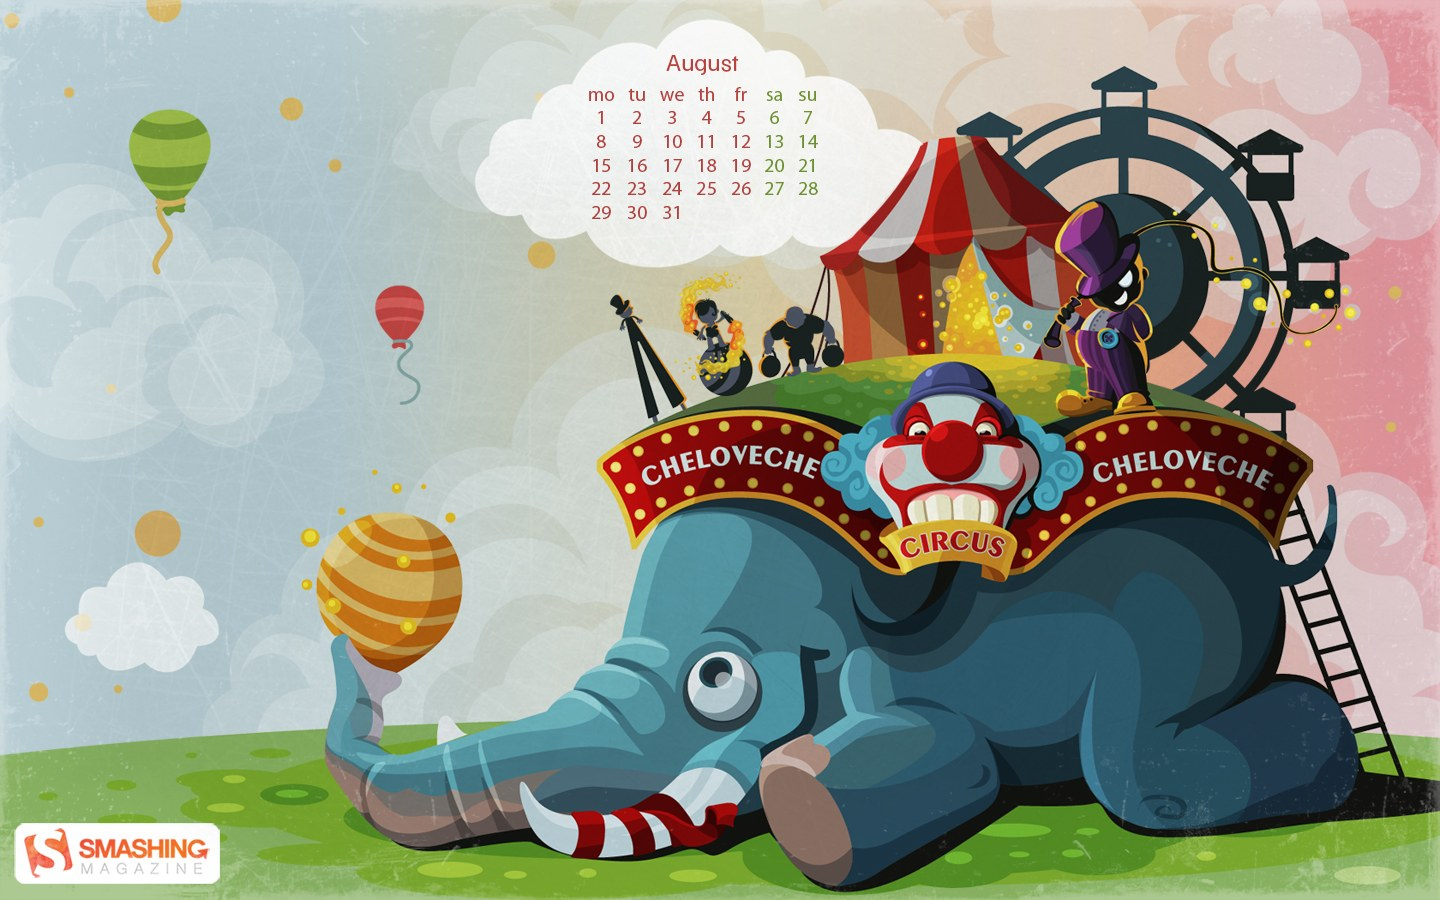 In January Calendar Wallpaper 29857